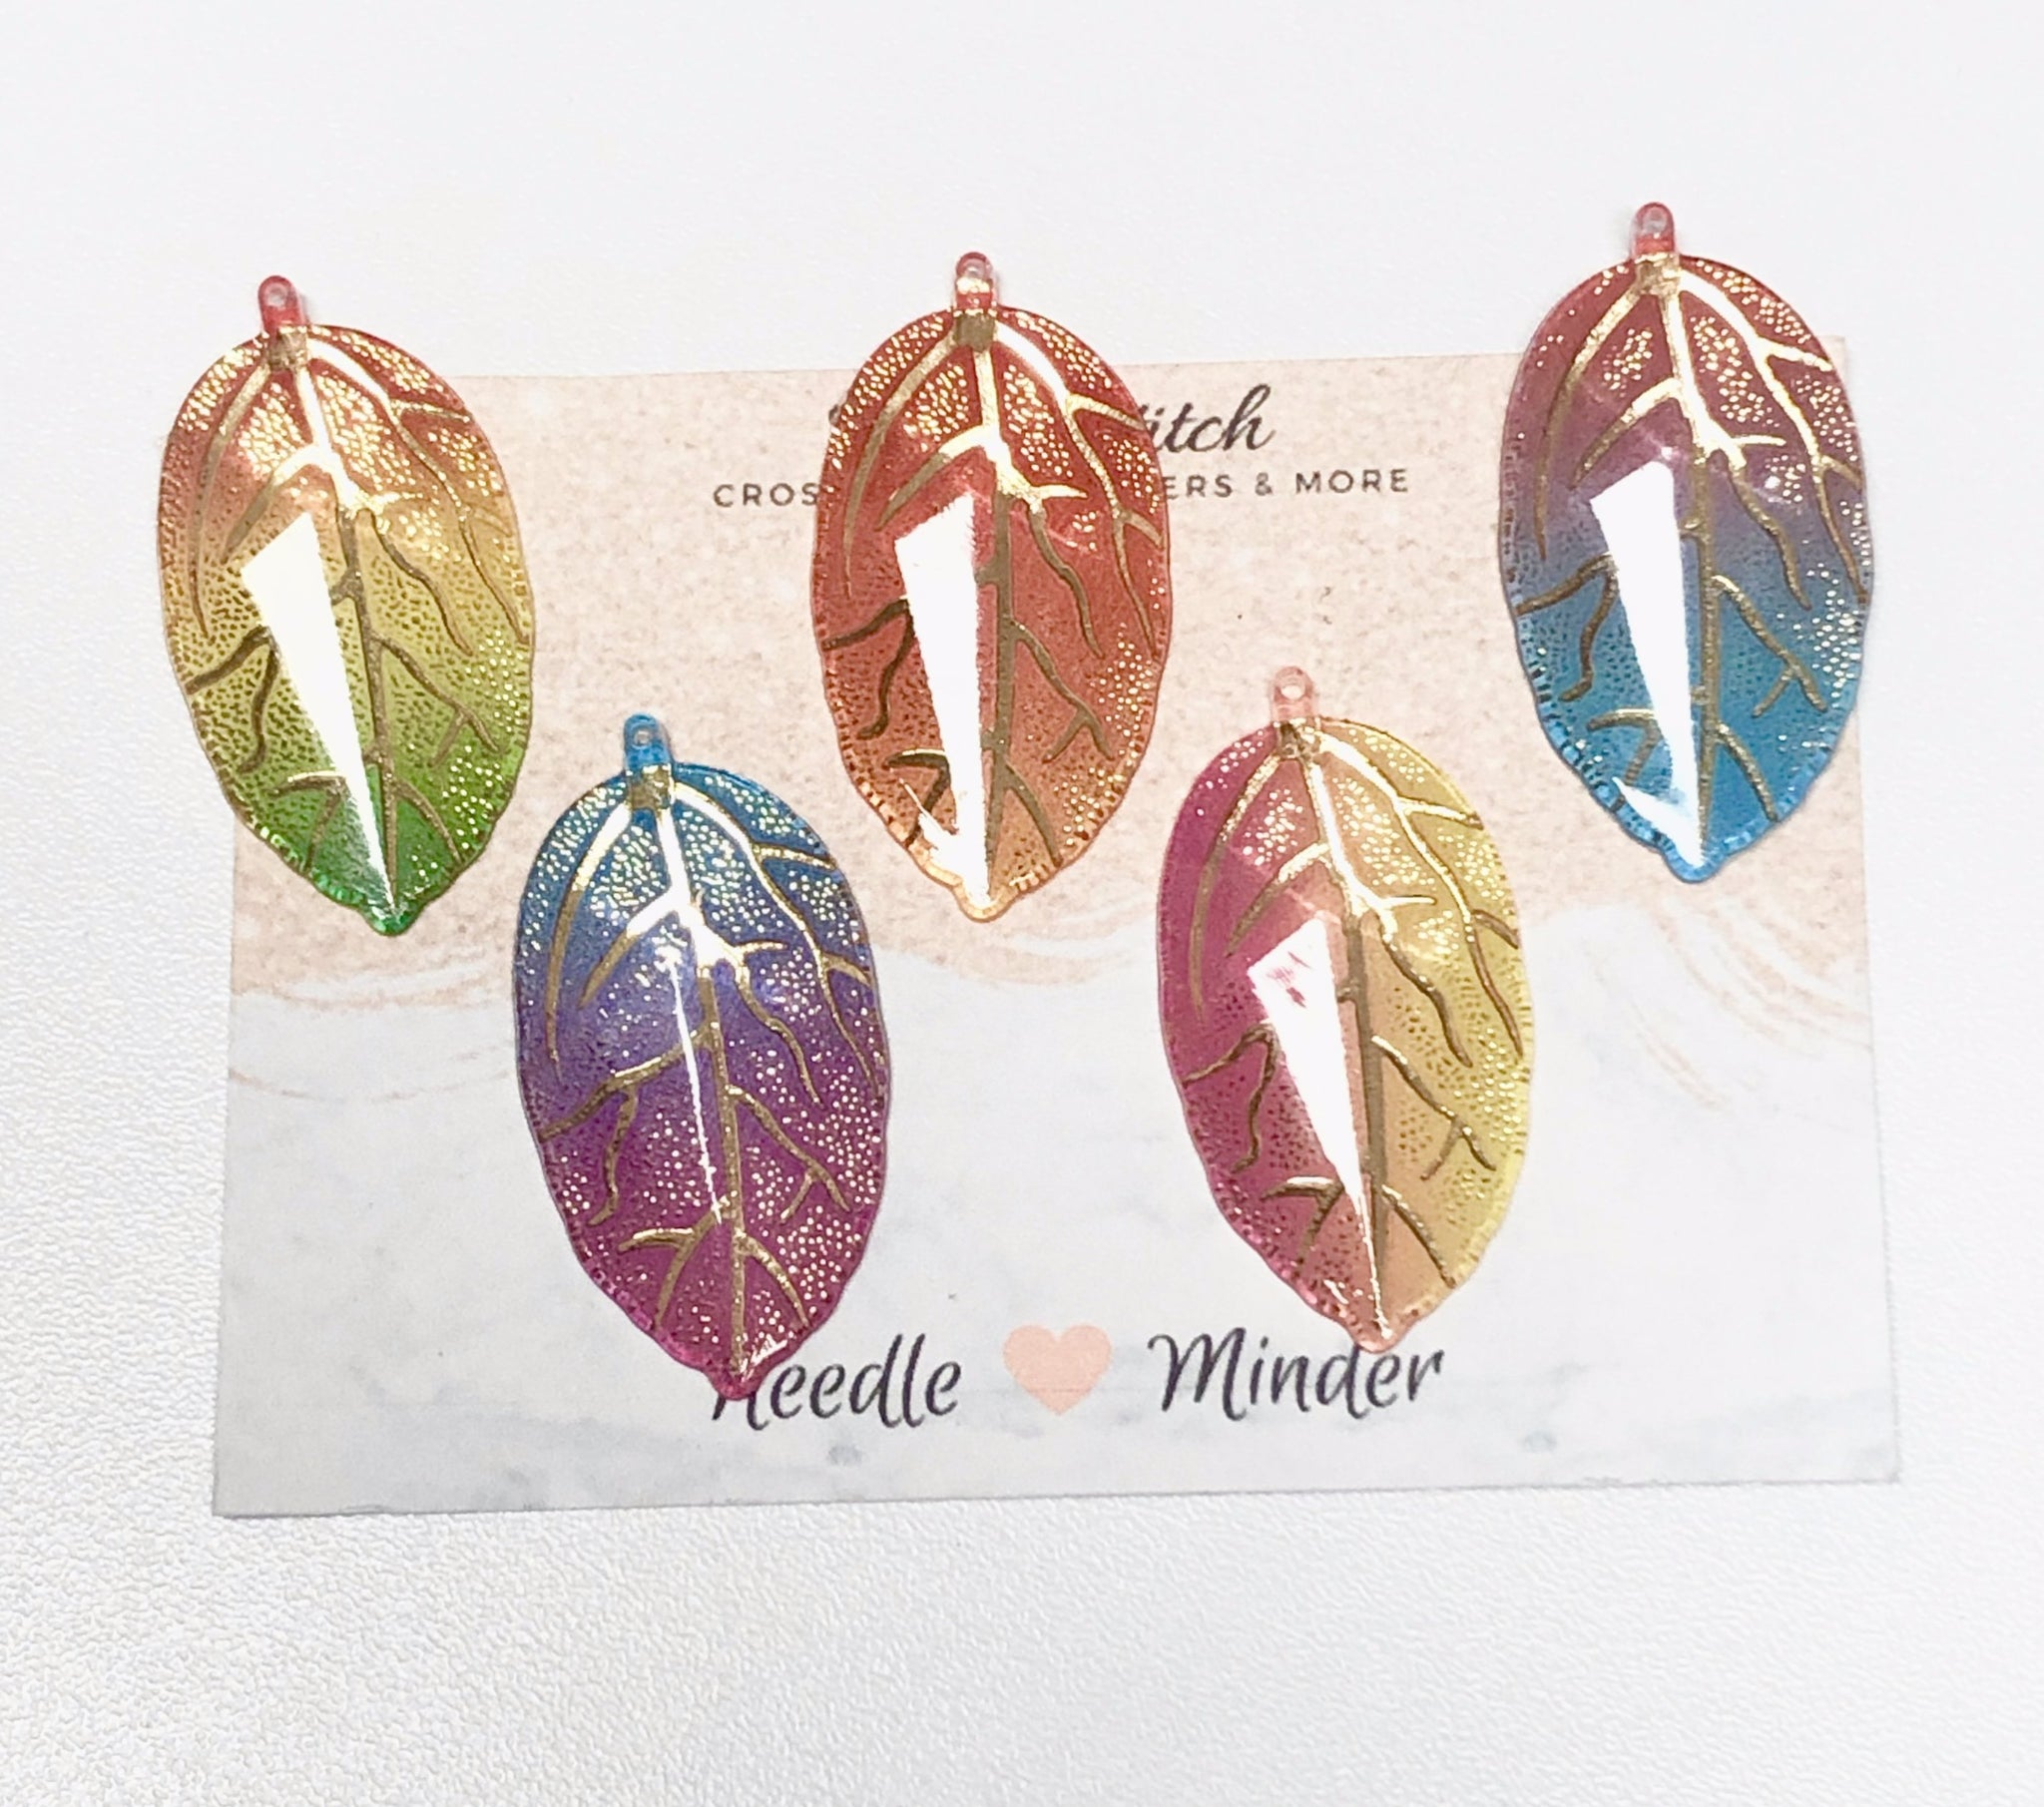 Leaf Needleminders for Cross Stitch, Embroidery and Sewing Projects